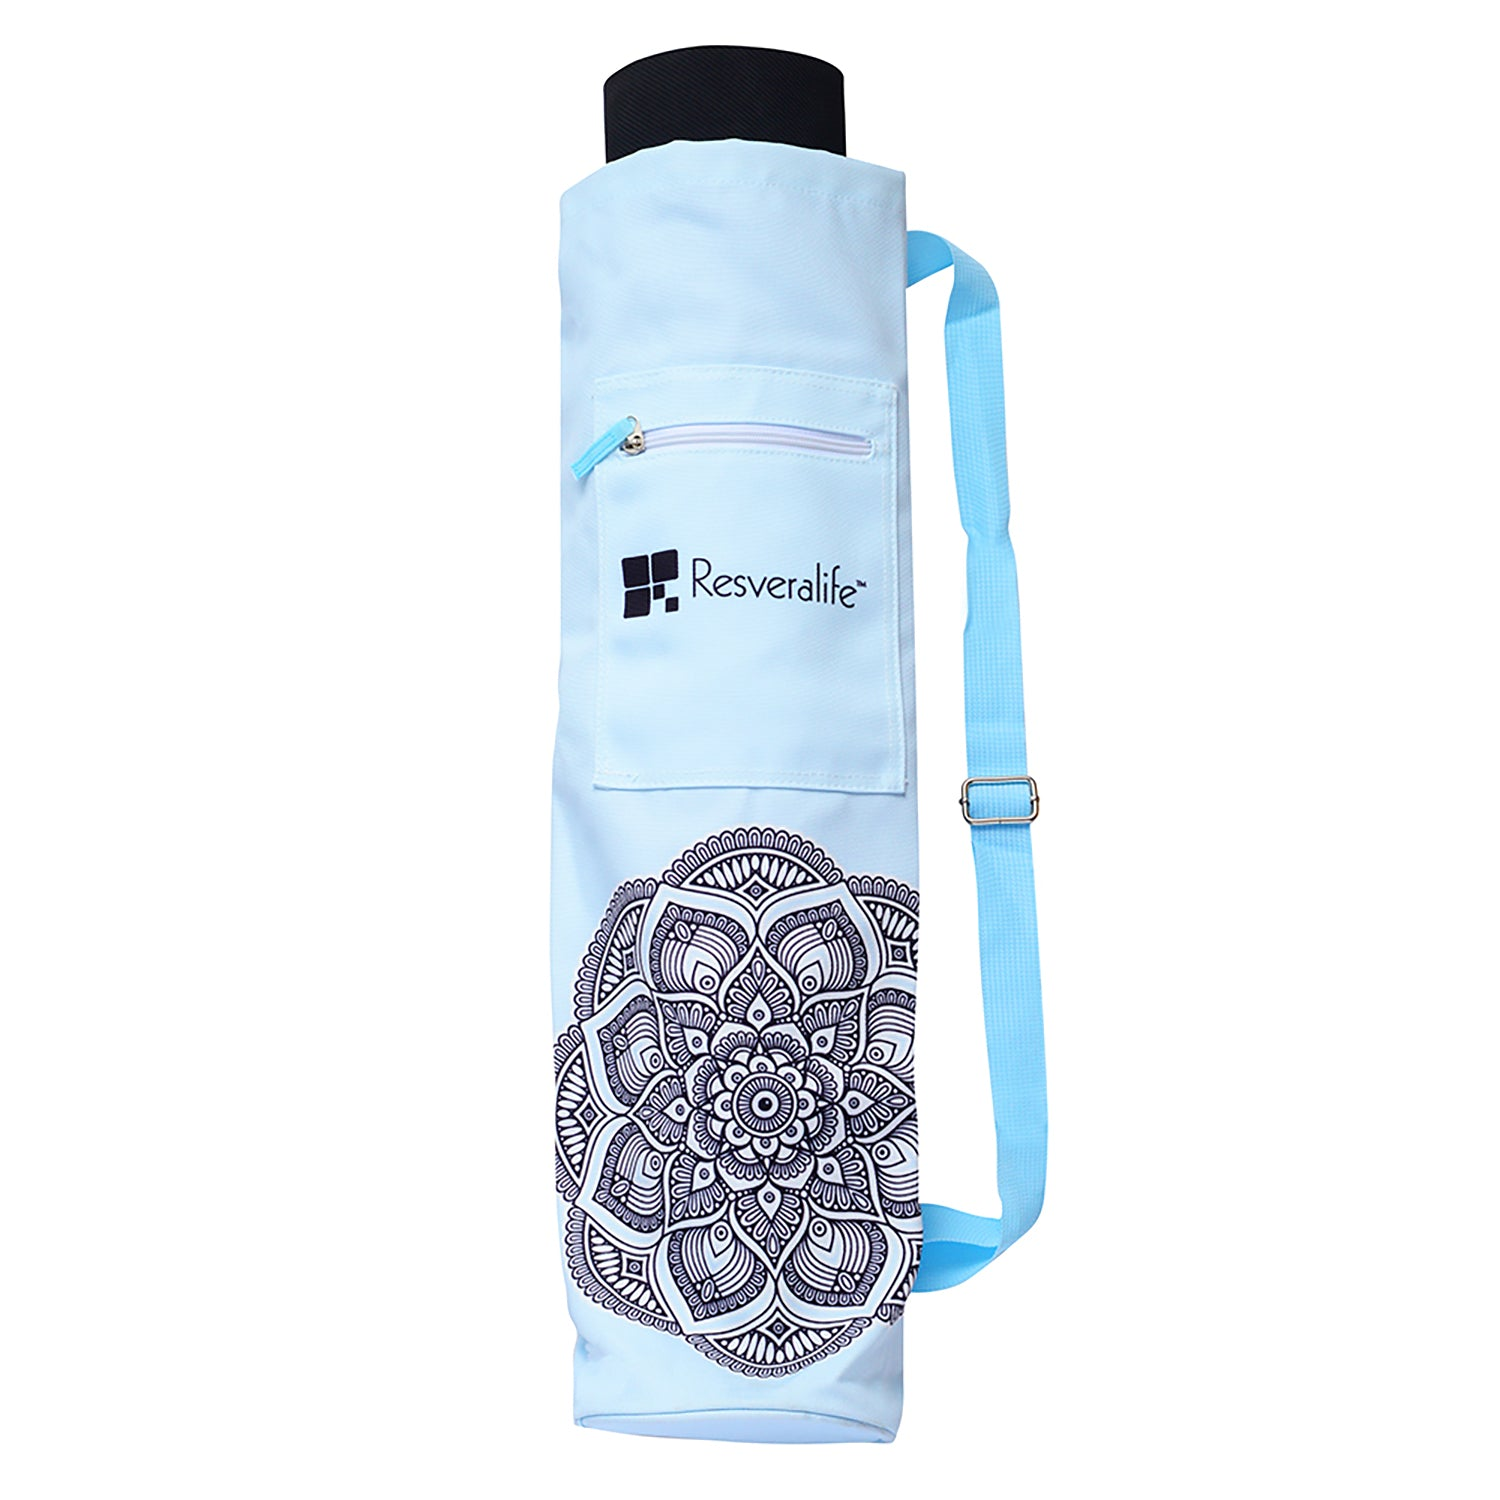 Resveralife Yoga Bag Carrier